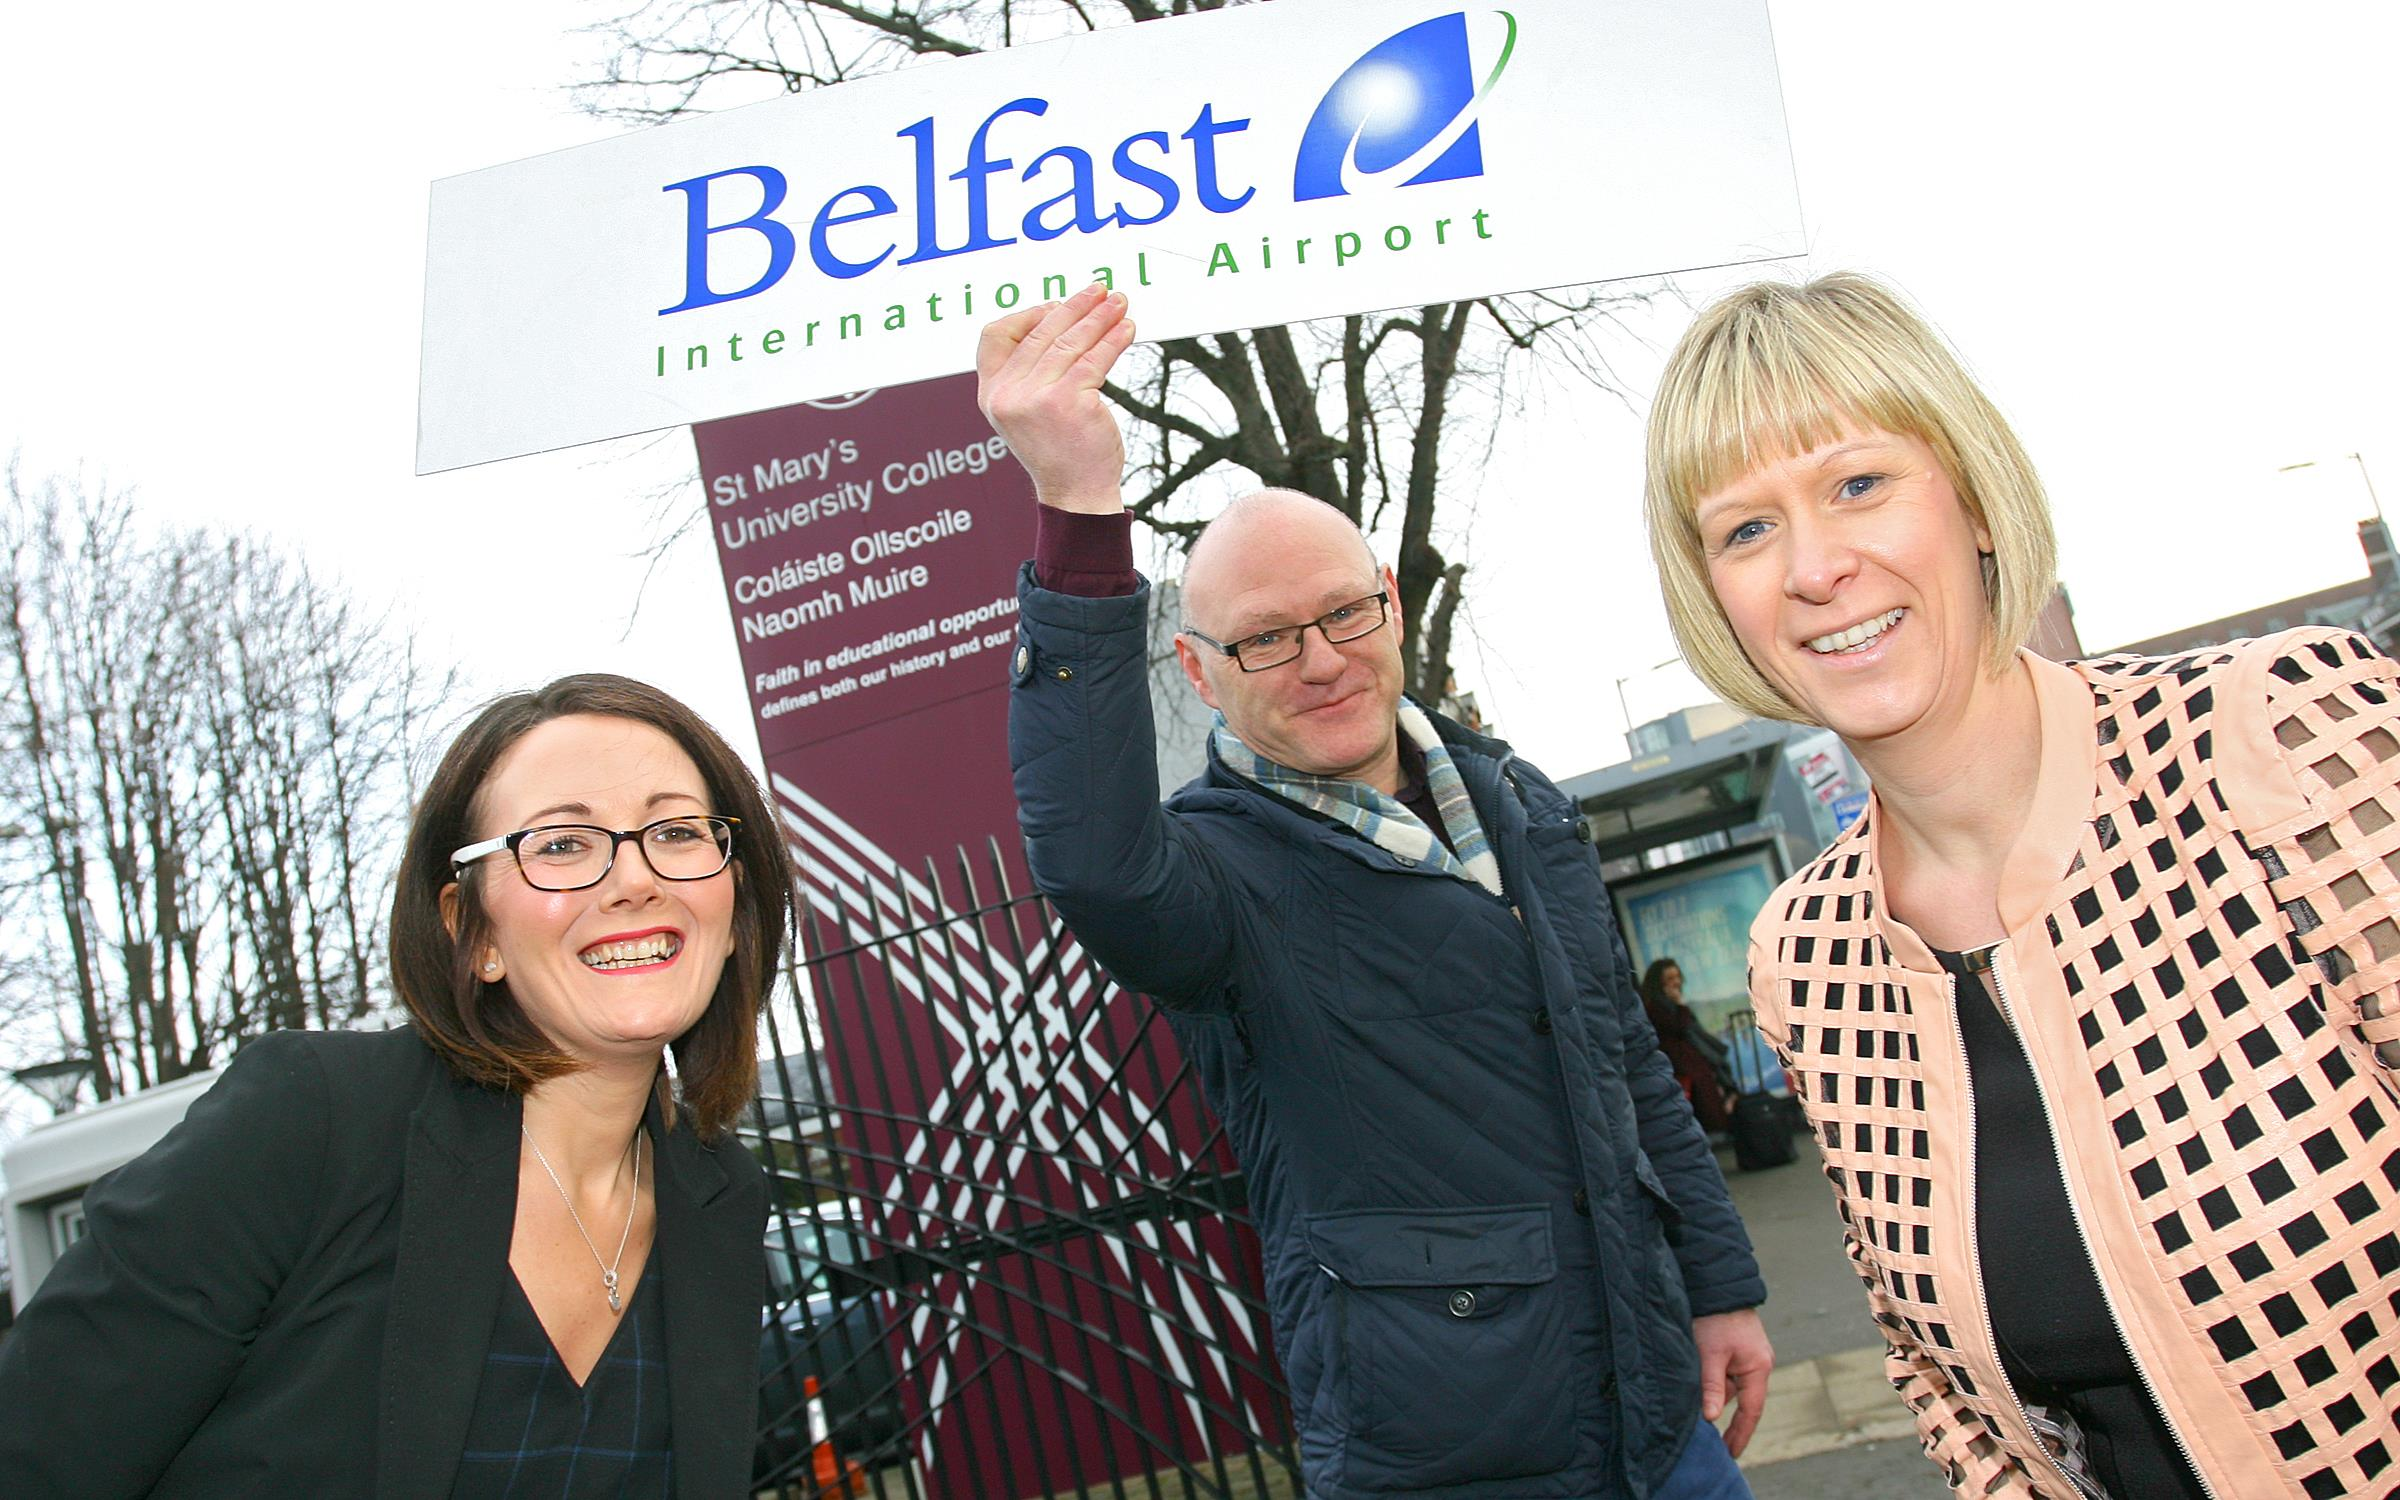 100 jobs on offer at Belfast International Airport